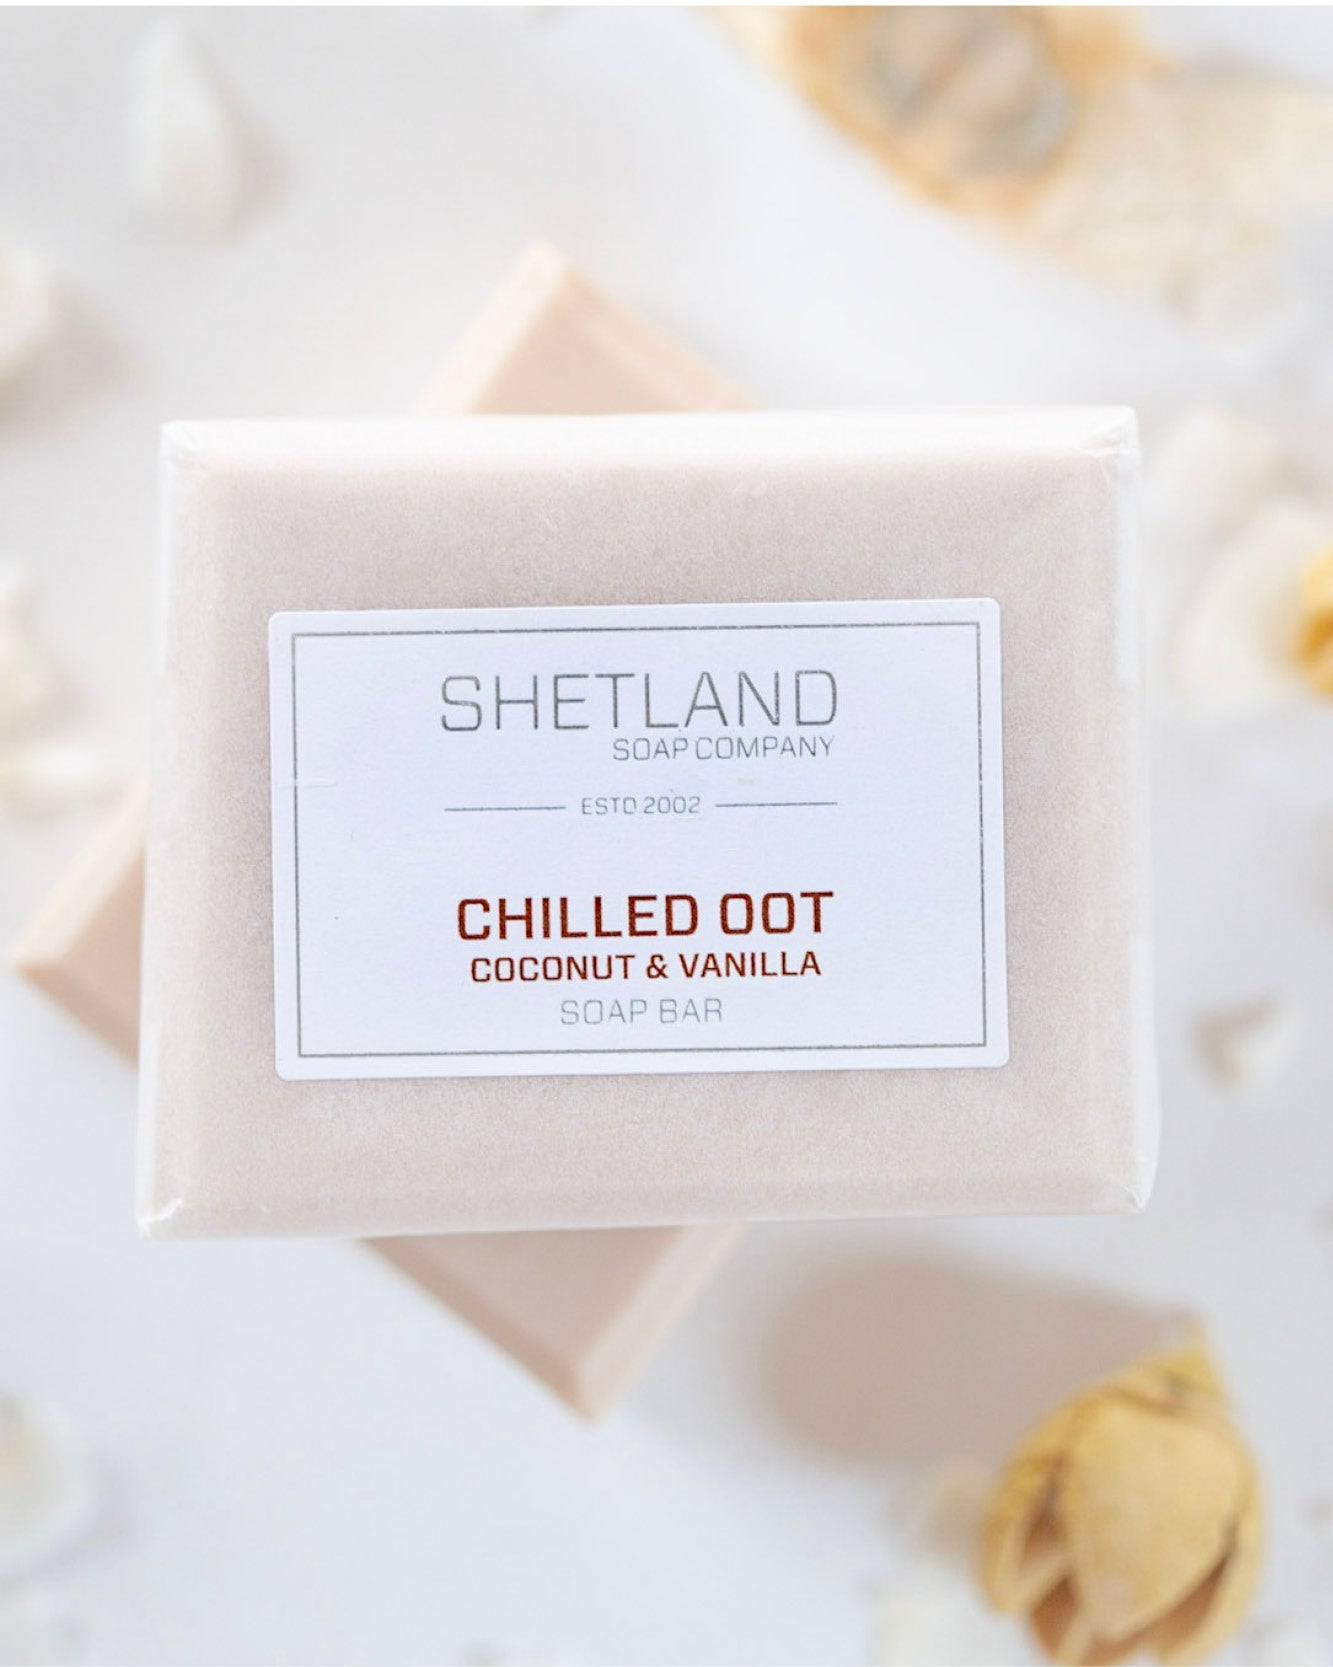 CHILLED OOT SOAP BAR